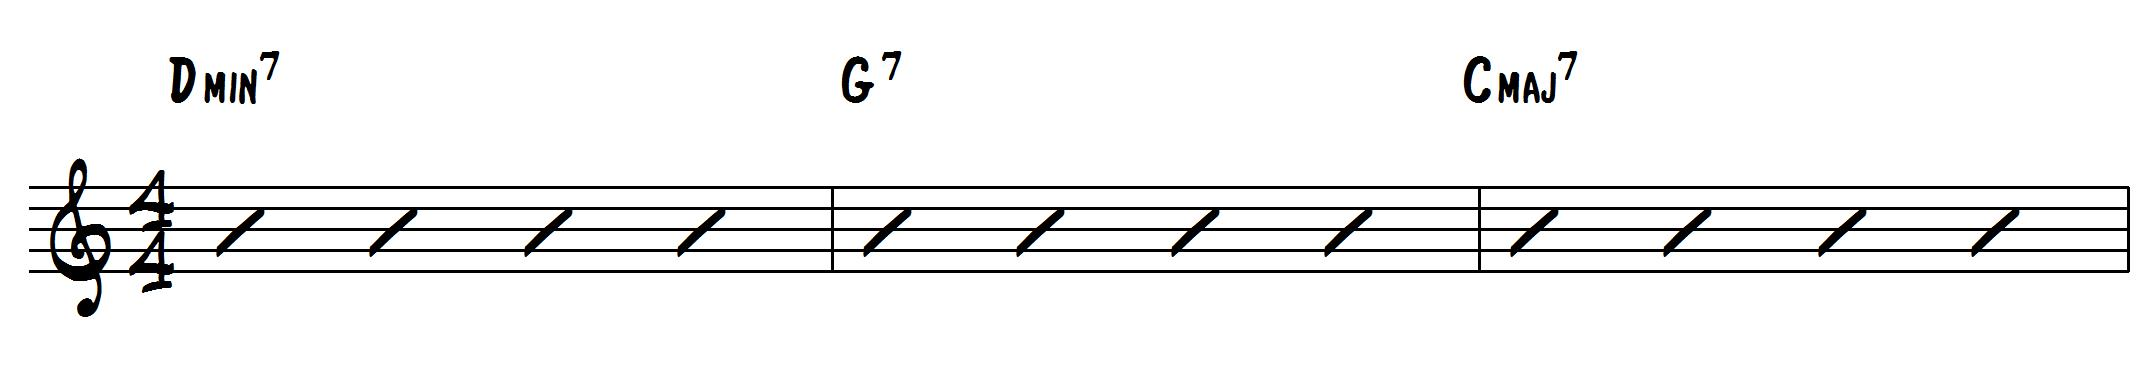 How To Substitute A Dominant 7 For A Diminished 7 Learn Jazz Standards